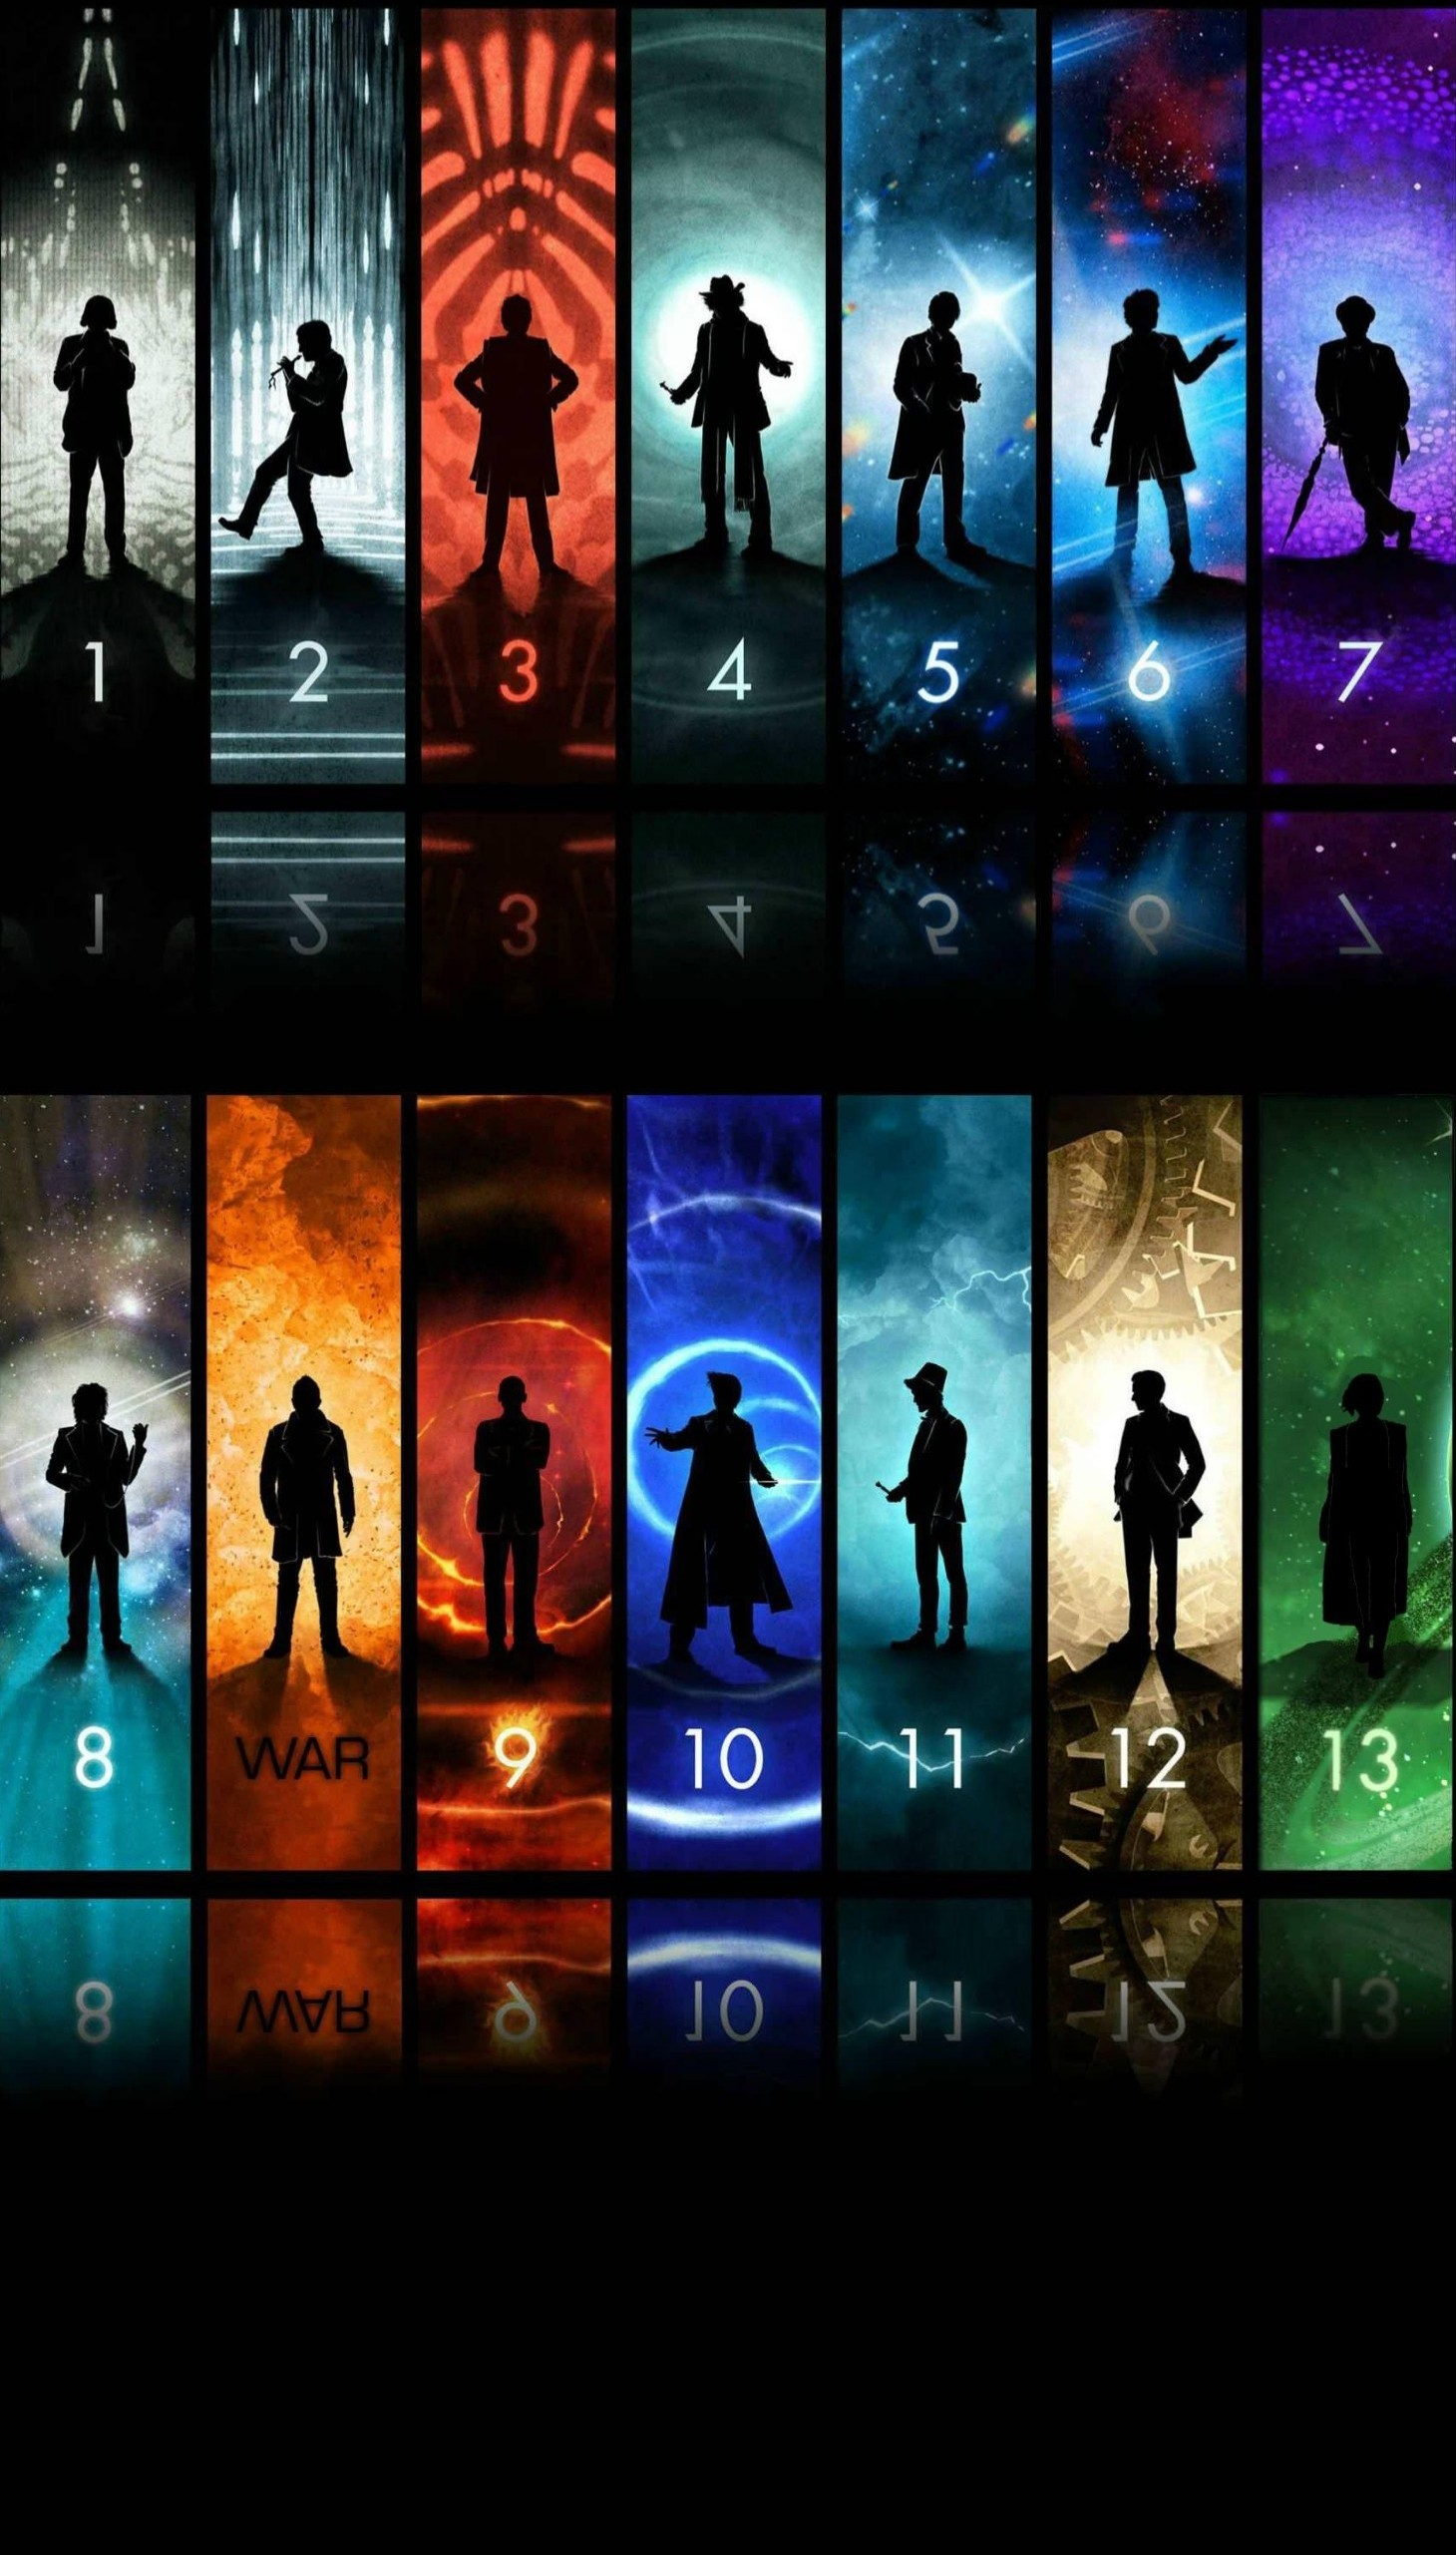 Doctor Who Wallpaper Phone 2435638 Hd Wallpaper Backgrounds